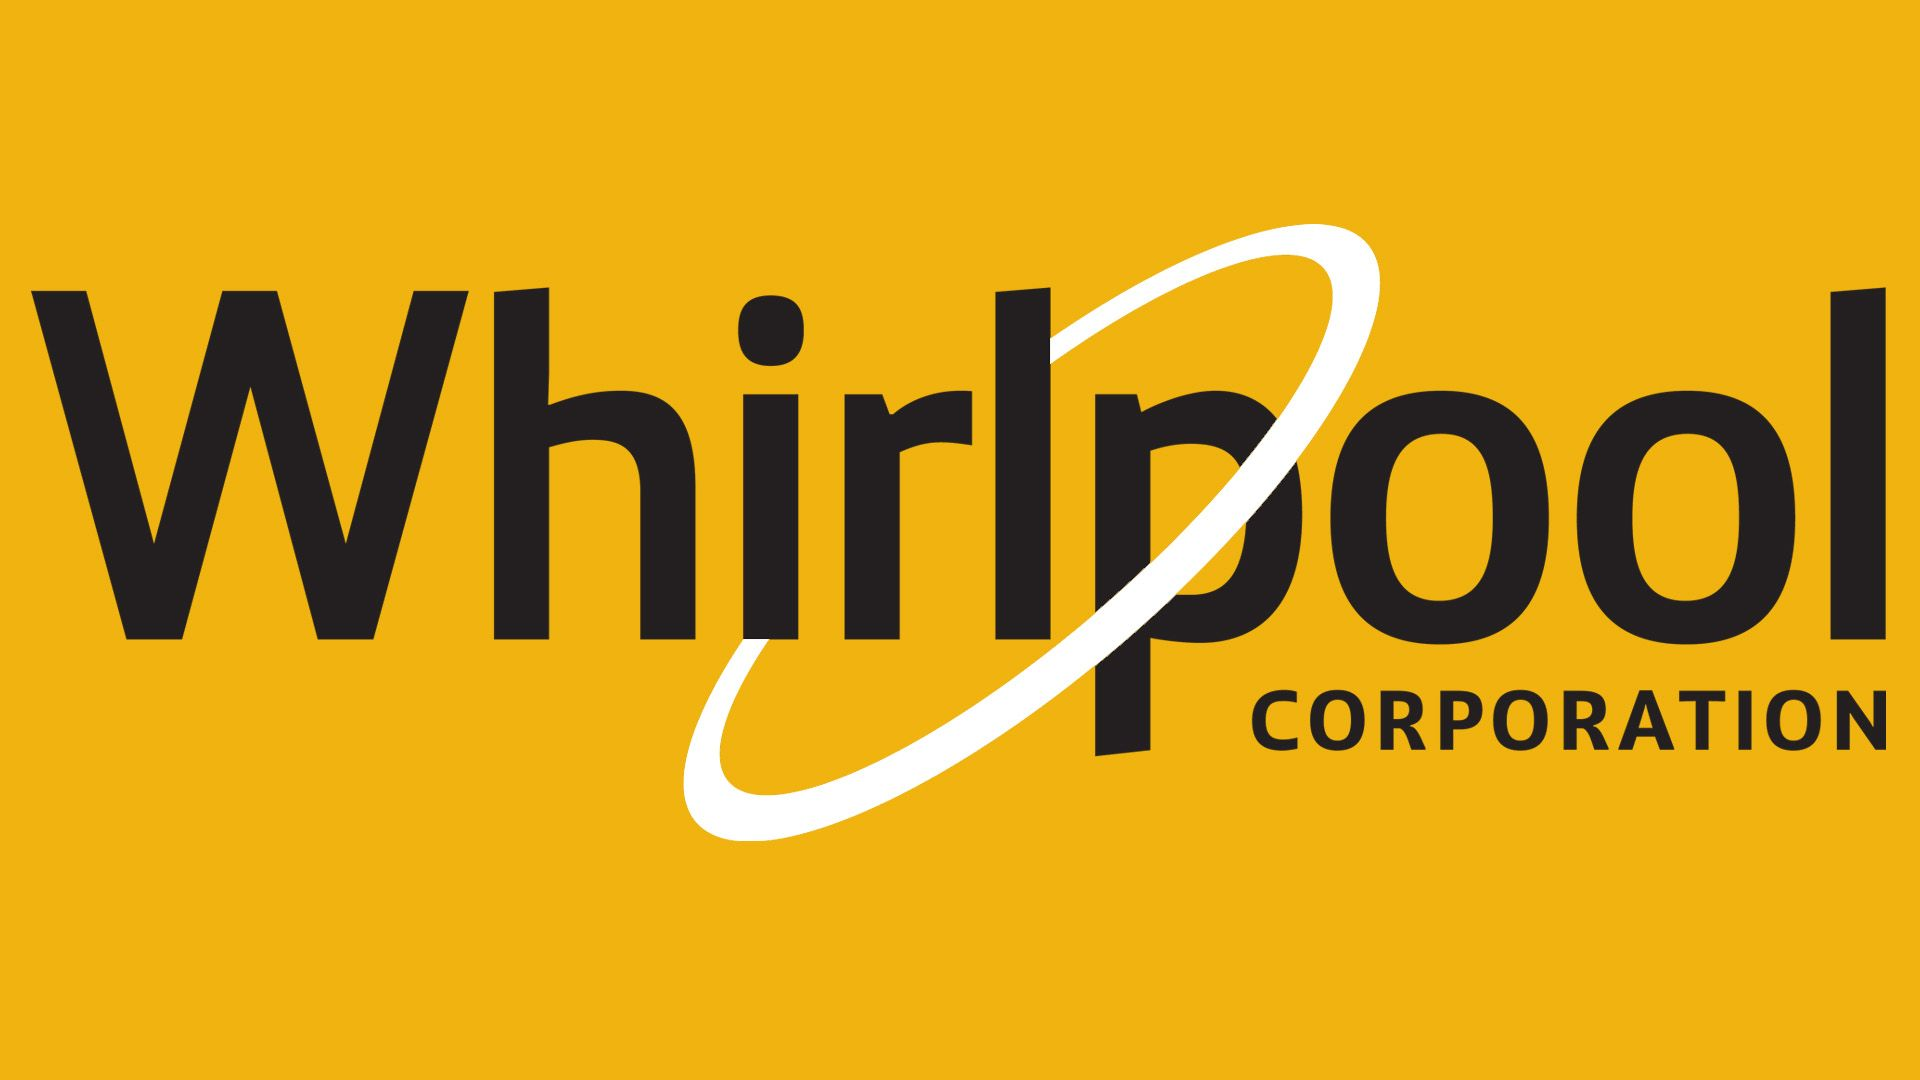 Whirlpool Logo - Whirlpool Logo, Whirlpool Symbol, Meaning, History and Evolution